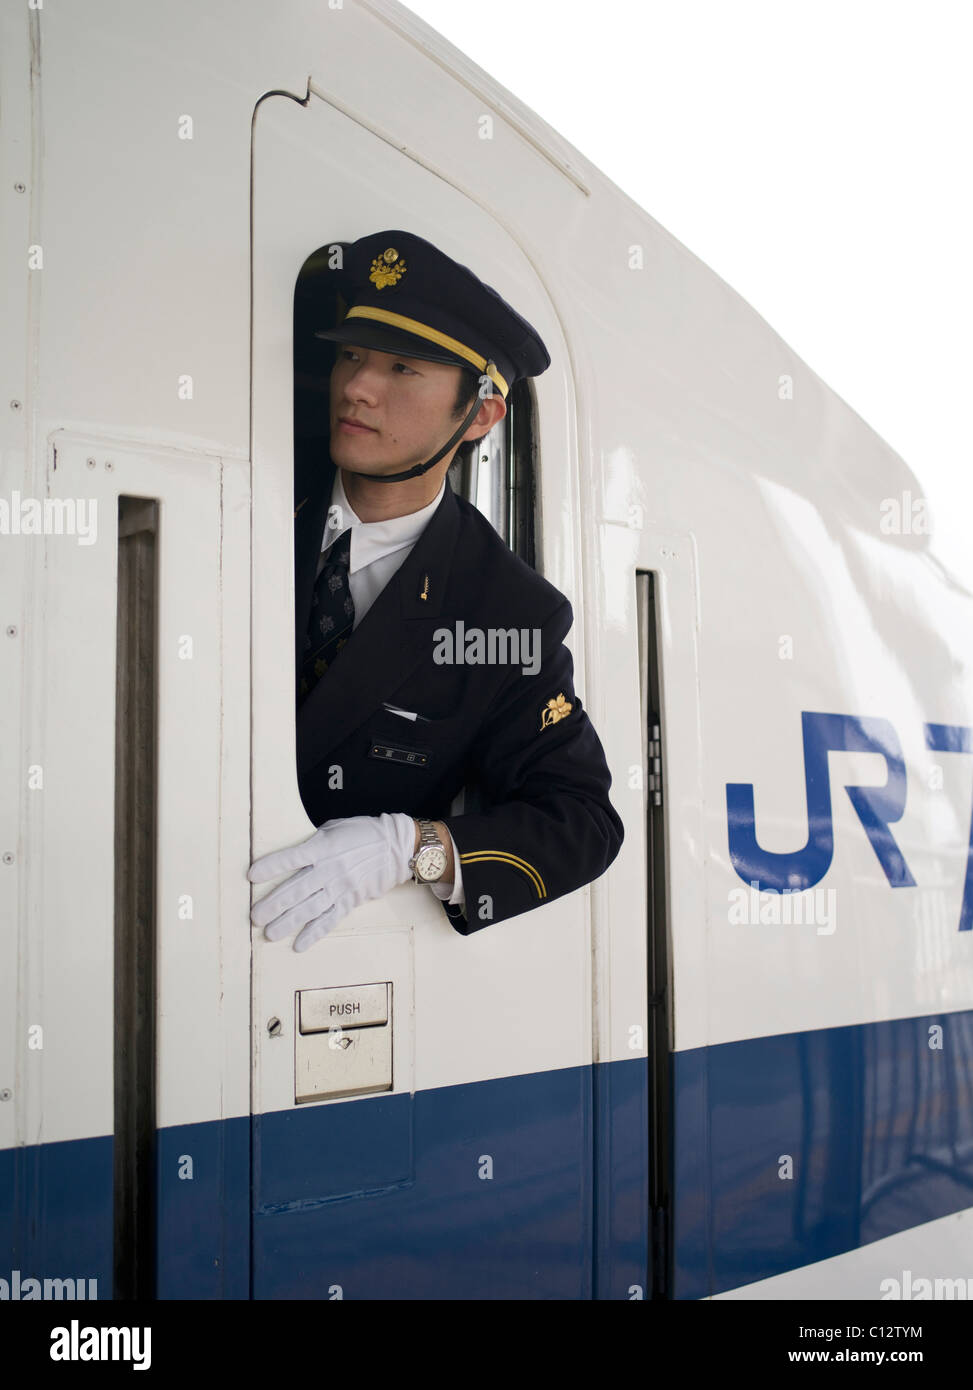 Shinkansen Bullet train conductor checks the platform as the train pulls out of Osaka station bound for Tokyo. - Stock Image